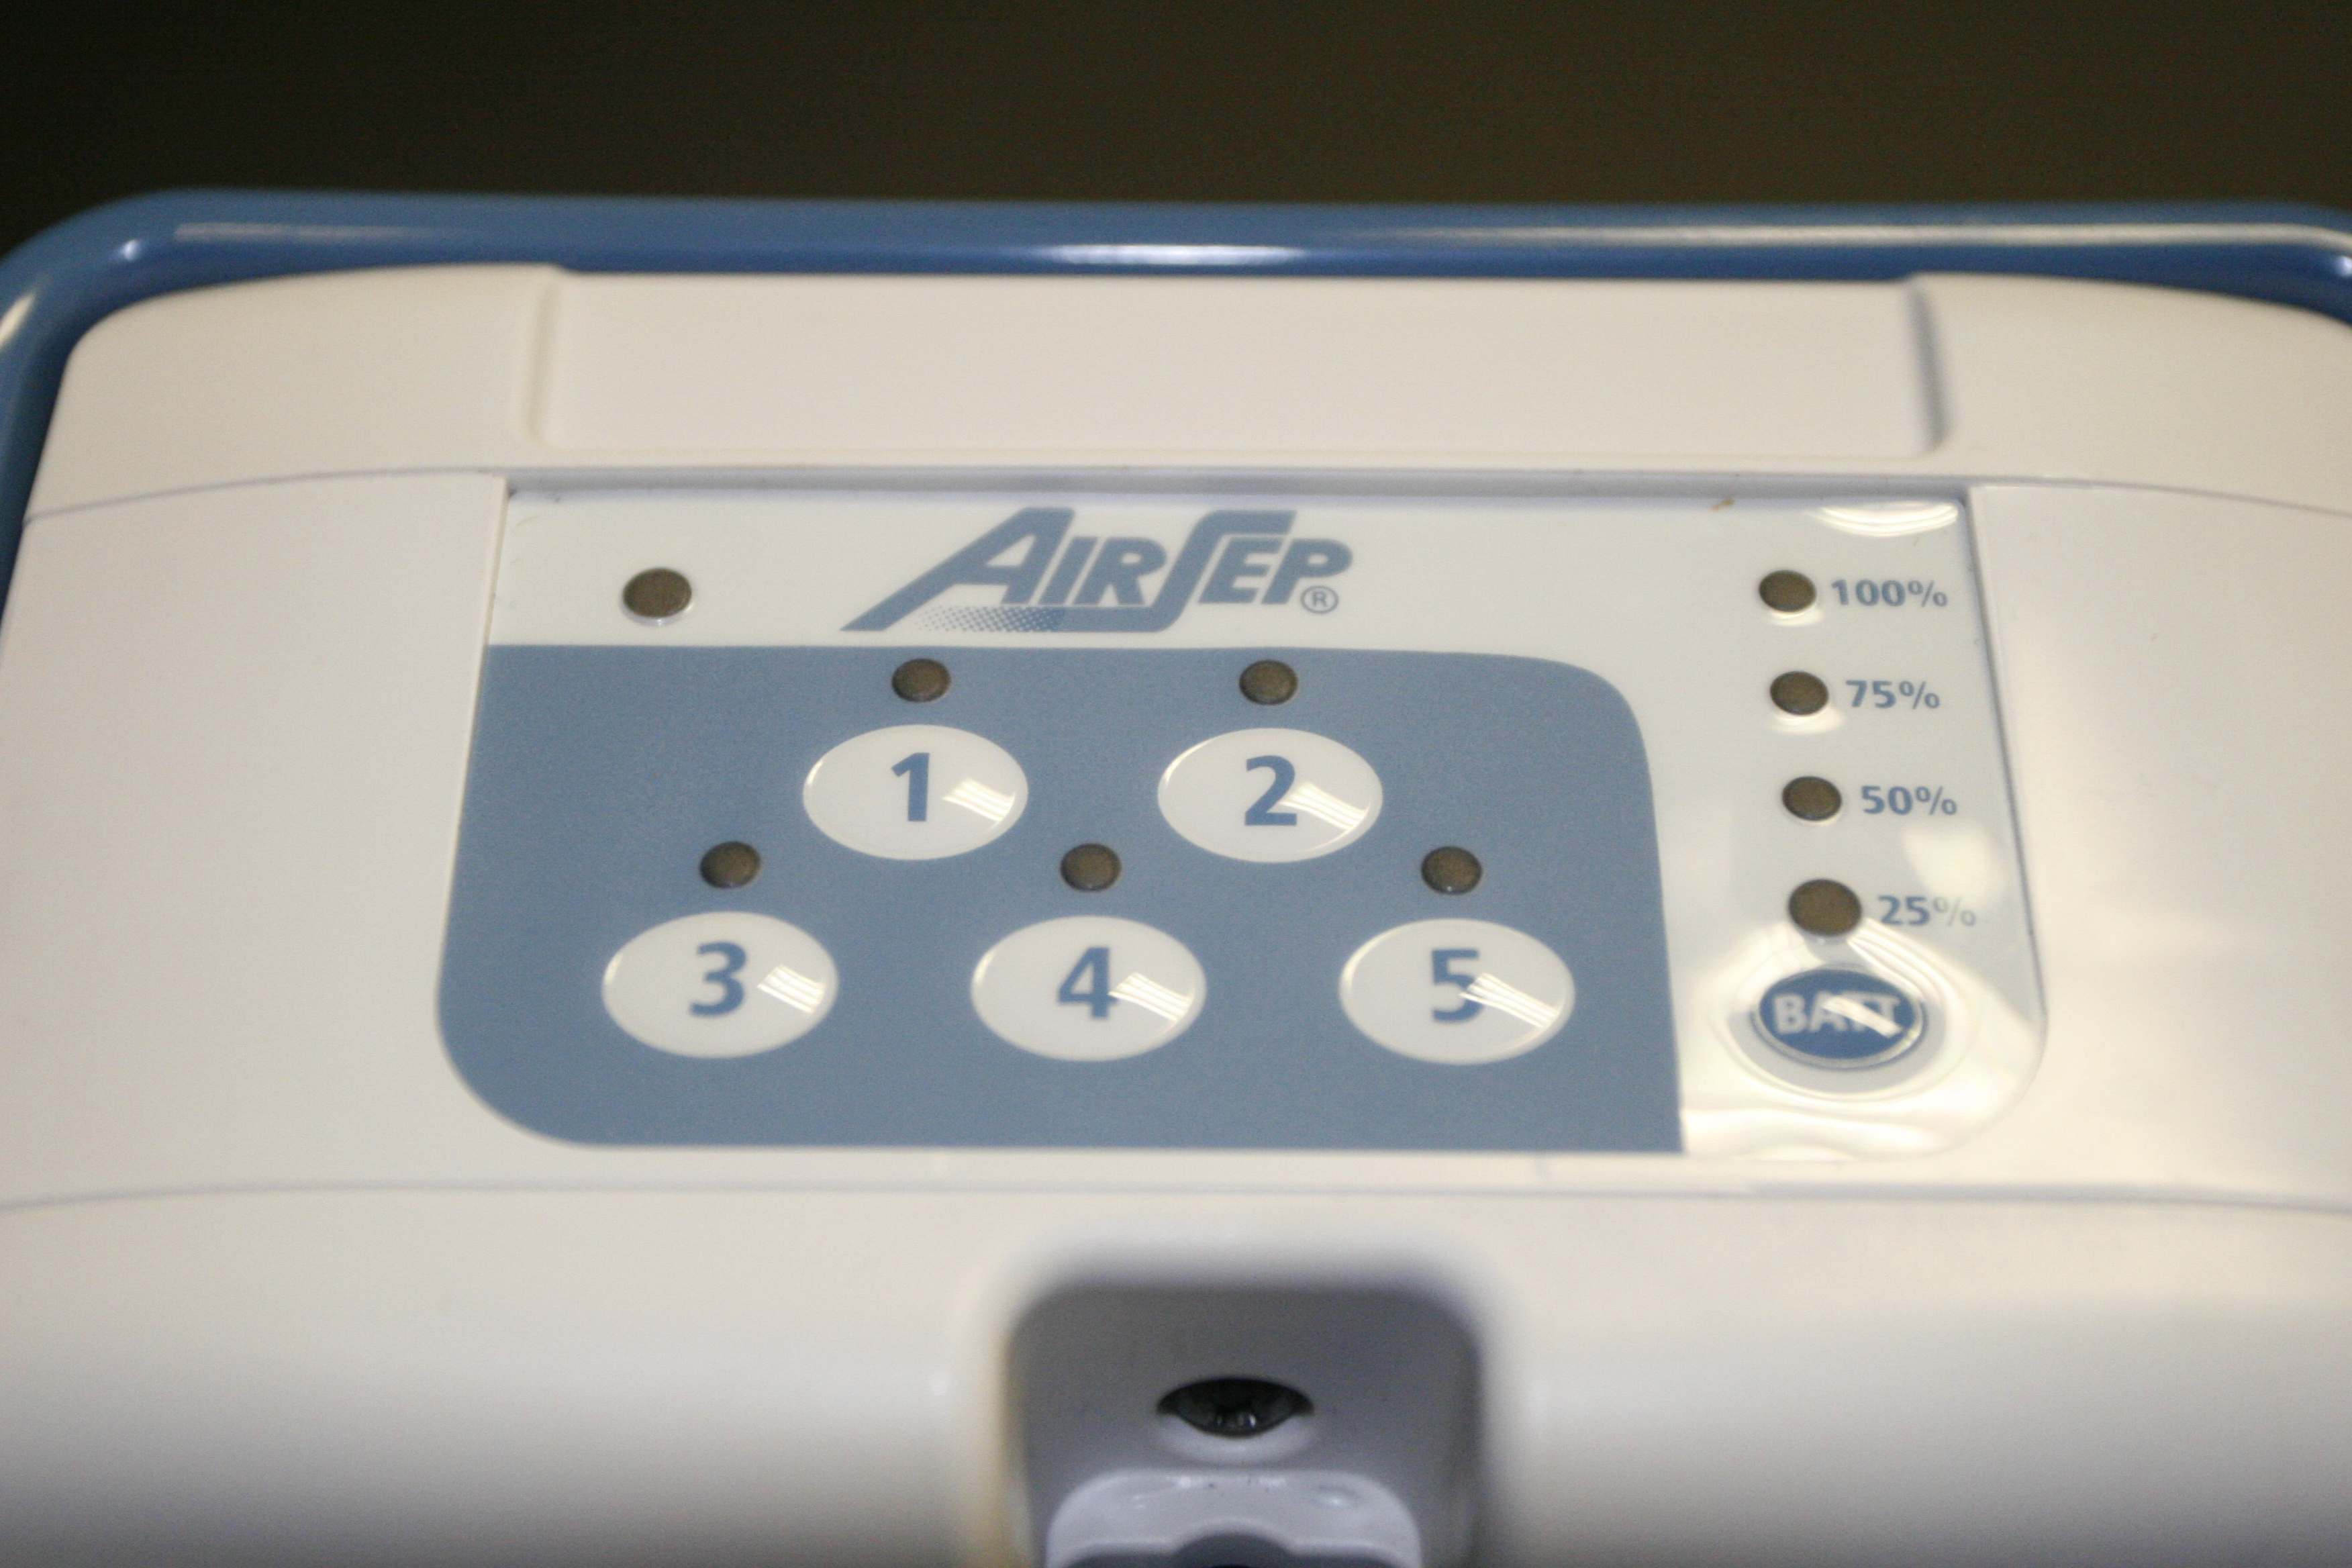 AirSep FreeStyle 5 Control Panel